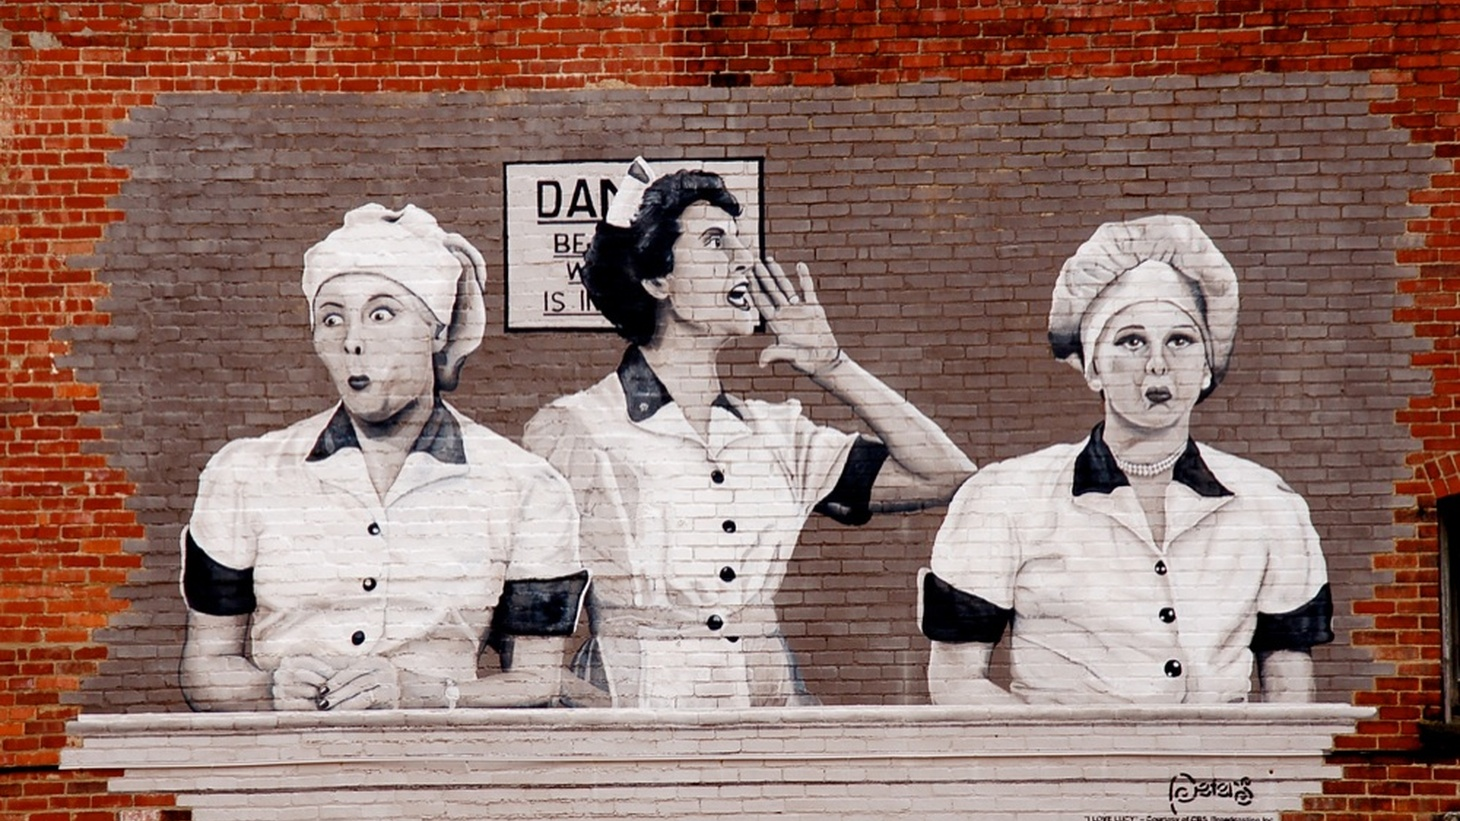 """A mural displays an iconic episode of """"I Love Lucy."""" Lucille Ball often comes up when discussing the early days of TV. But what other other leading women in the history of TV?"""